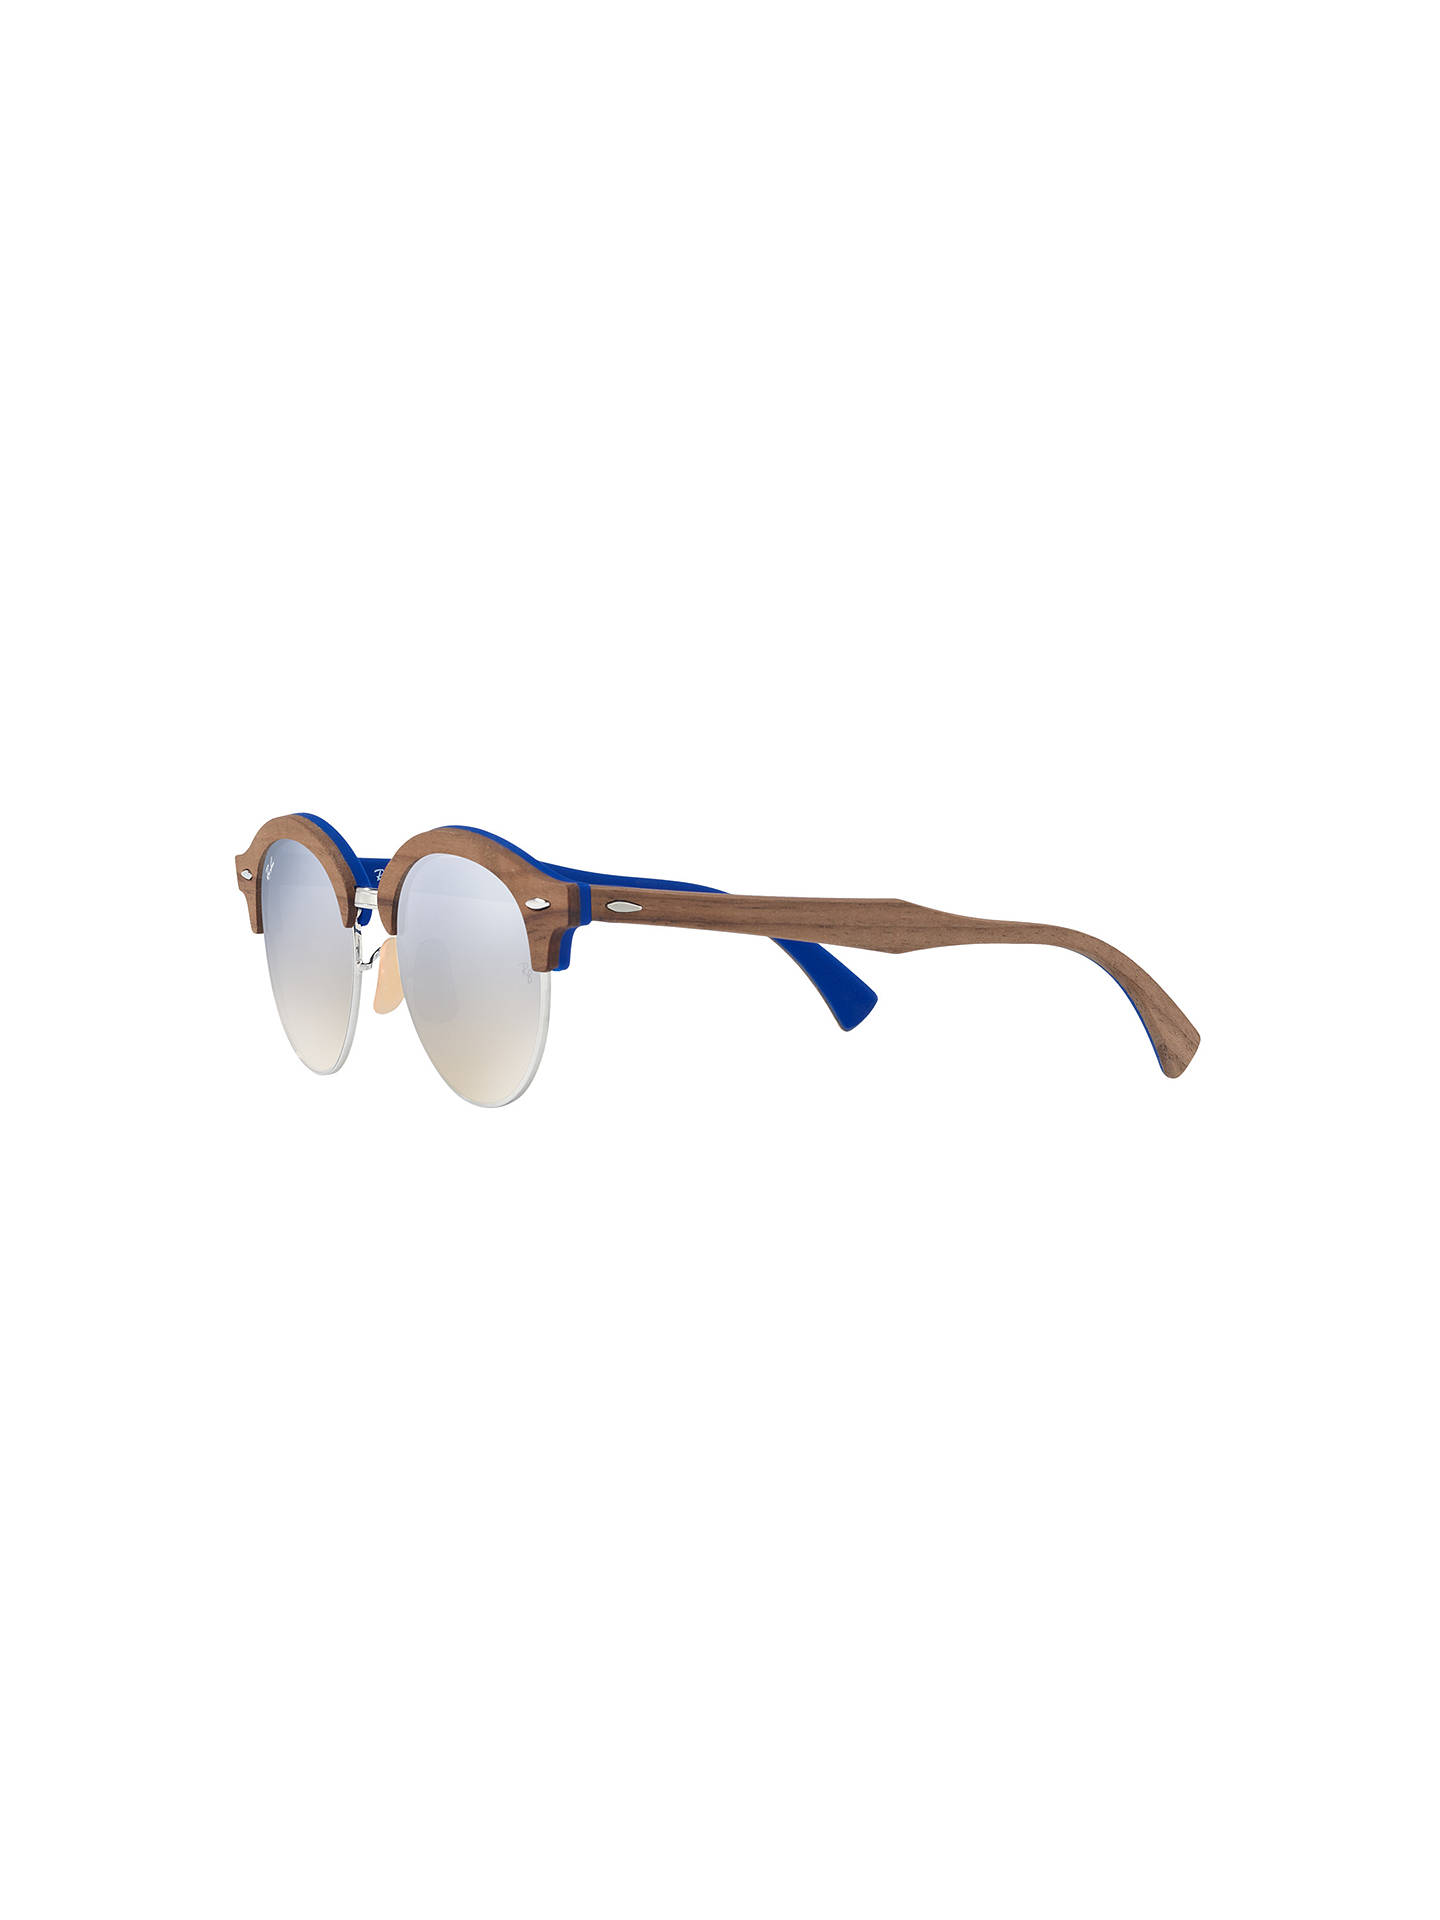 BuyRay-Ban RB4246M Clubround Wood Round Sunglasses, Brown/Silver Gradient Flash Online at johnlewis.com